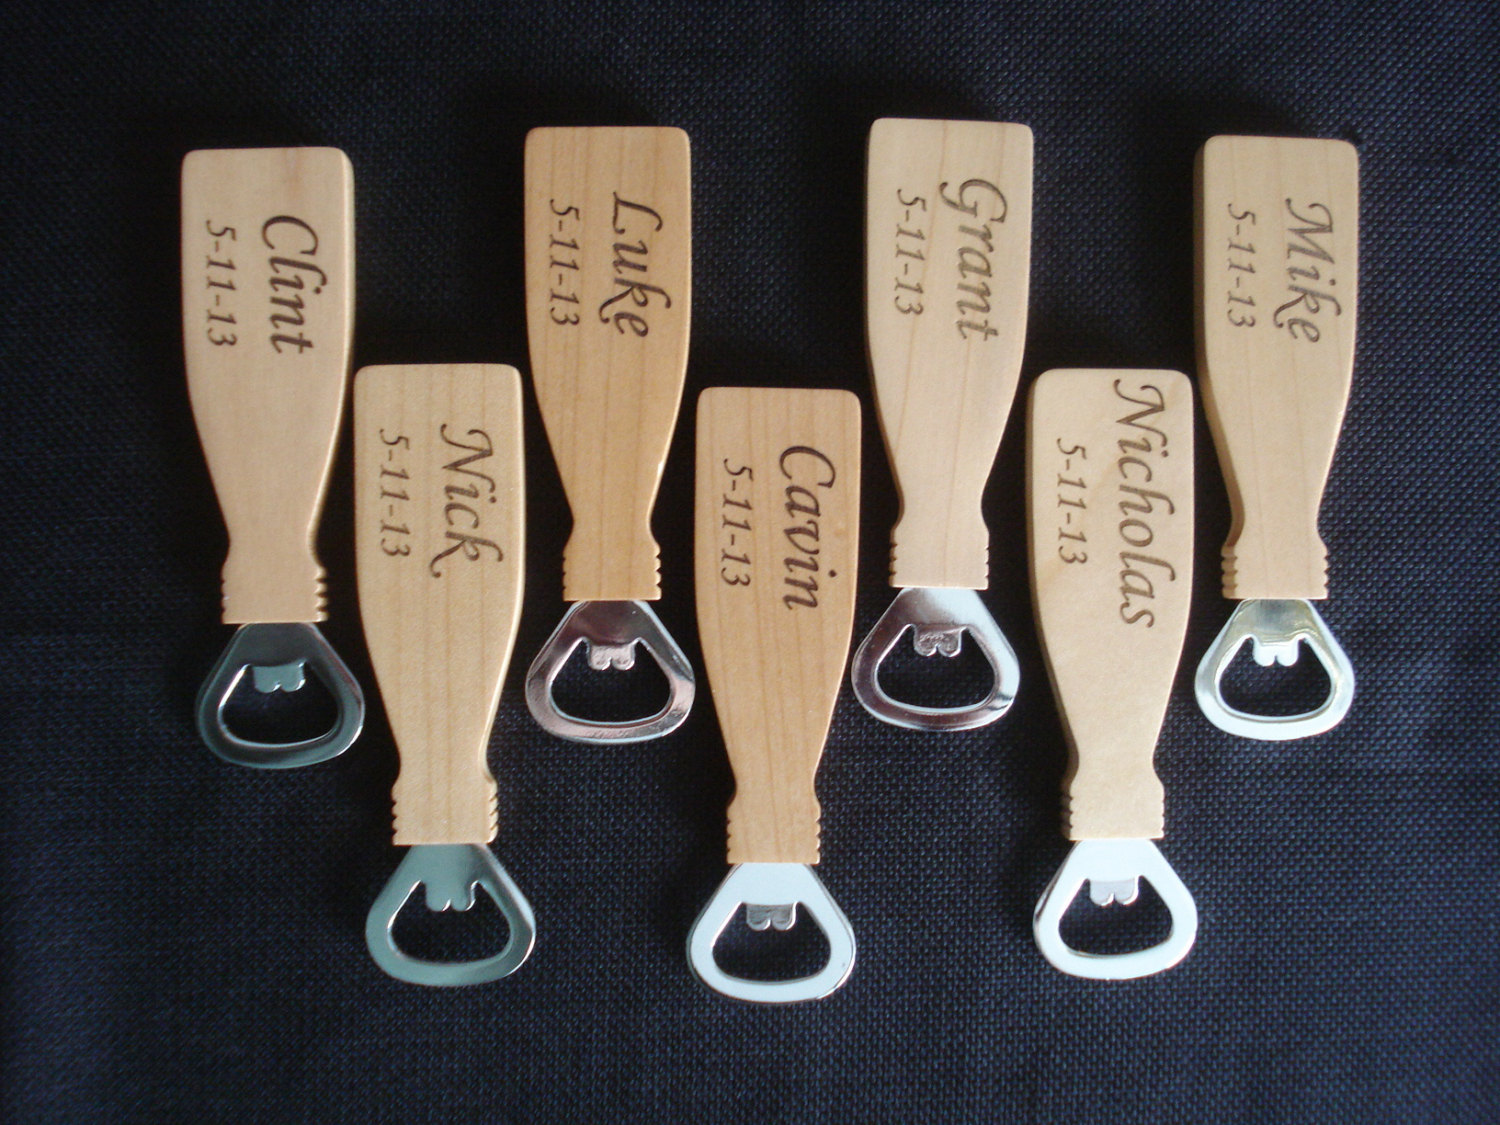 Good Wedding Party Gifts For Groomsmen : ... Bottle Openers - Great gifts for Wedding Party, - Party Favors